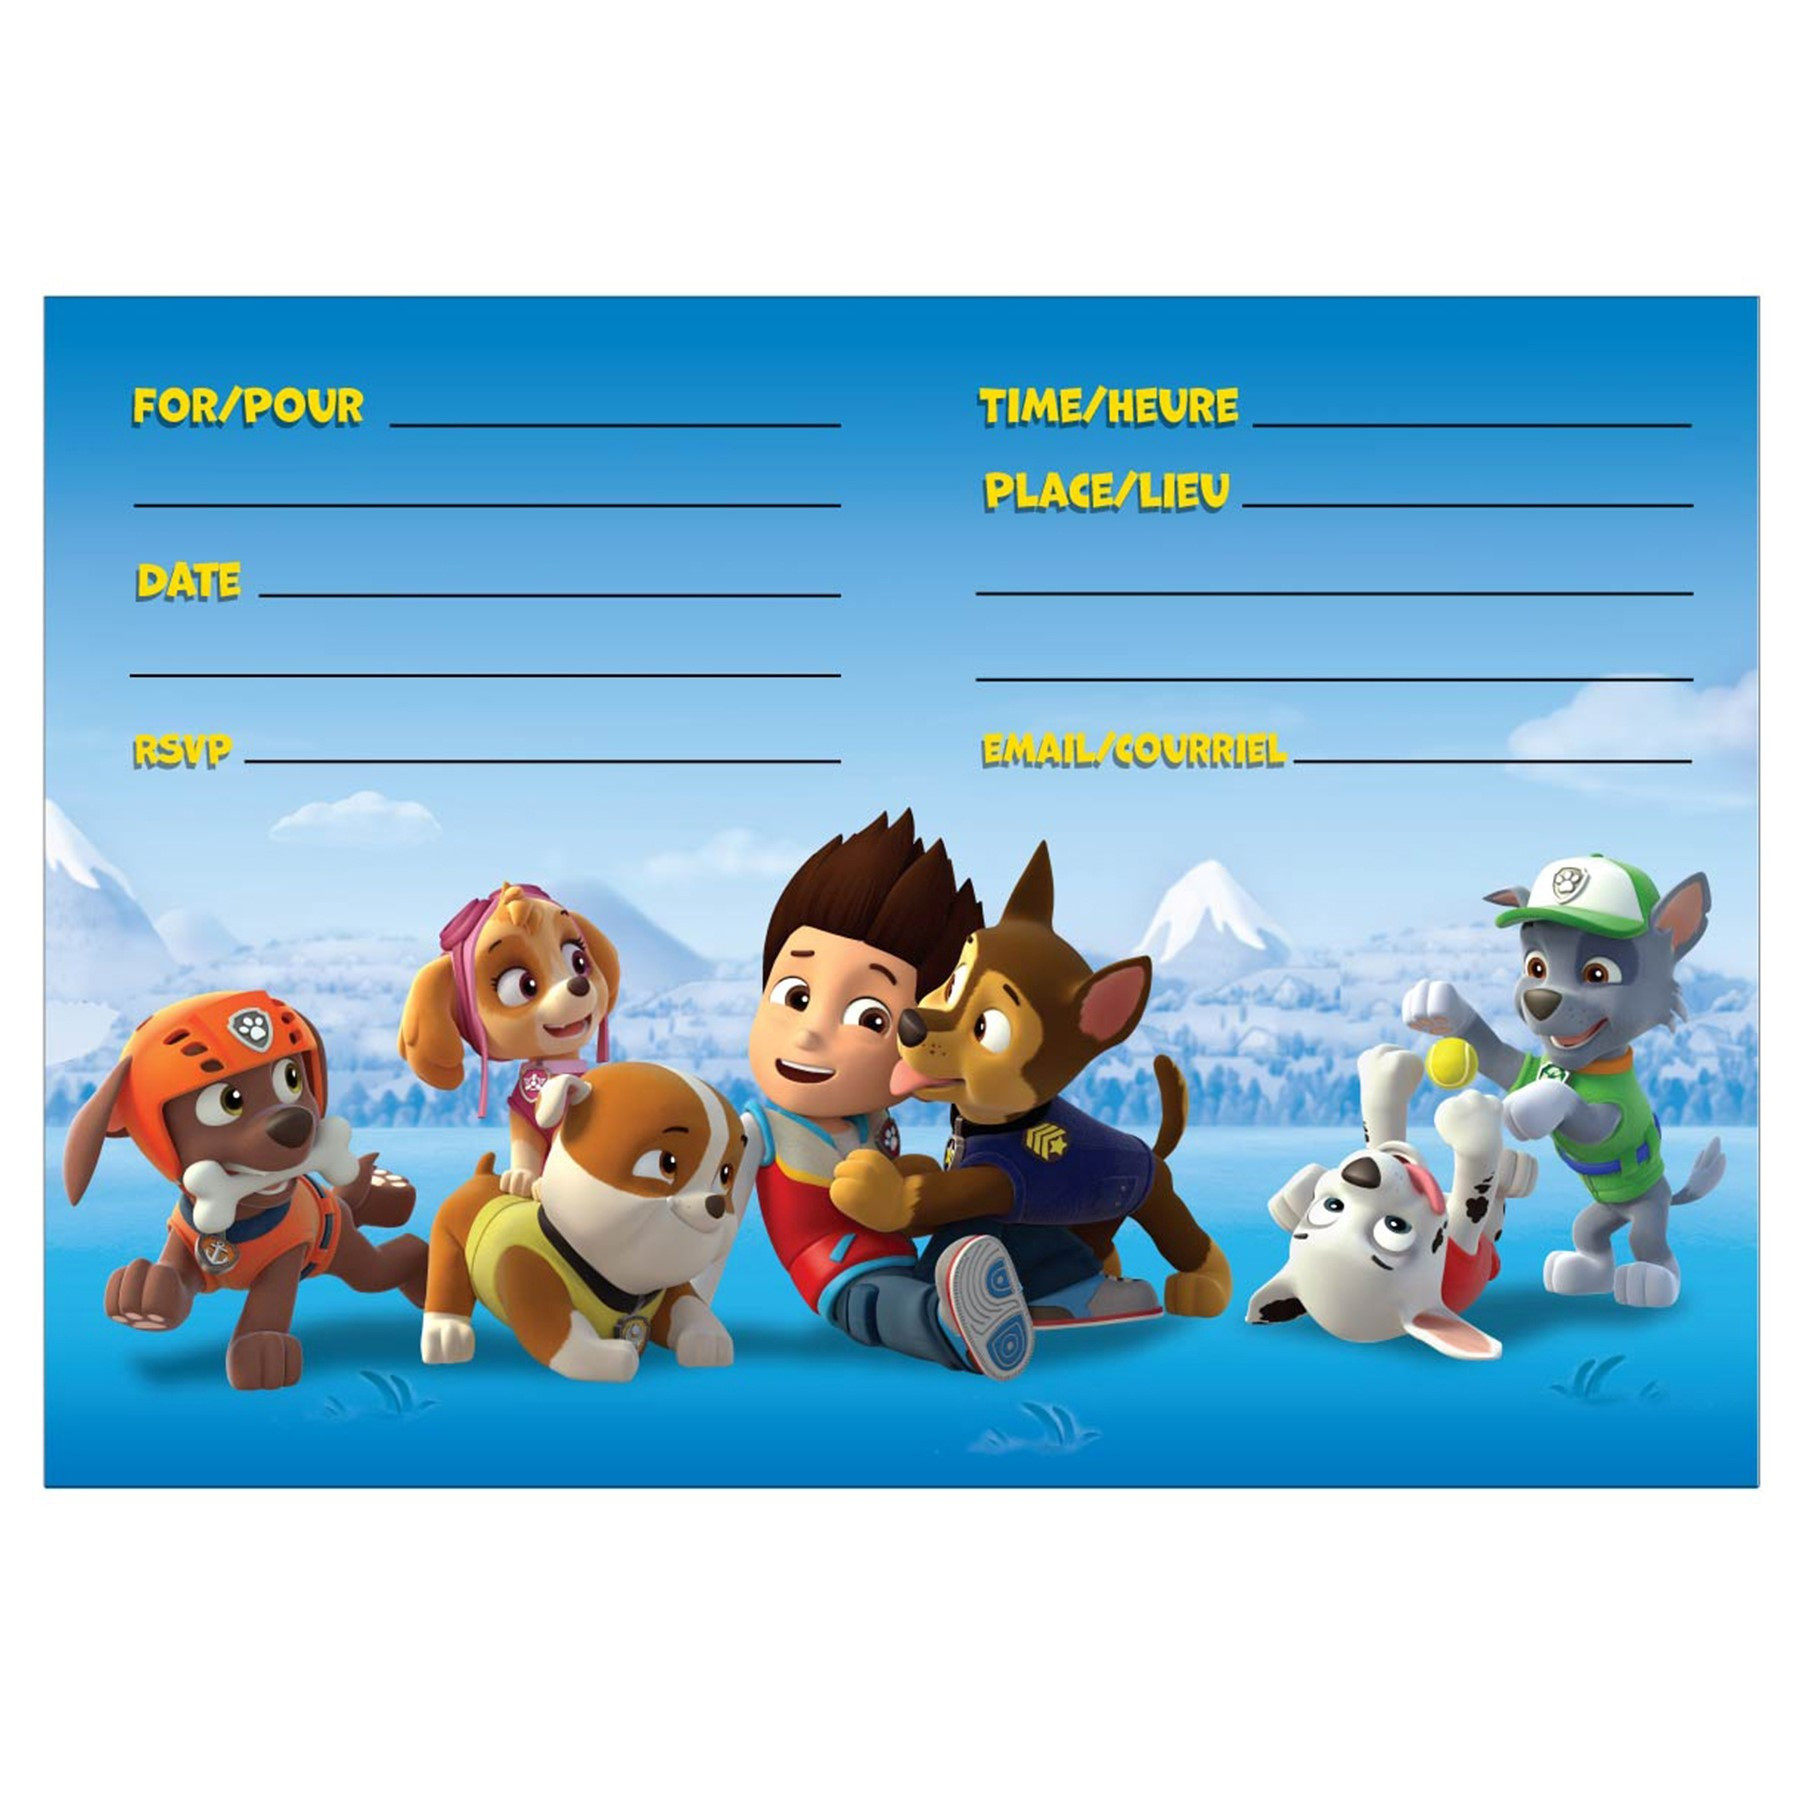 024 Template Ideas Paw Patrol Invitation Templates Remarkable - Free Printable Paw Patrol Invitations